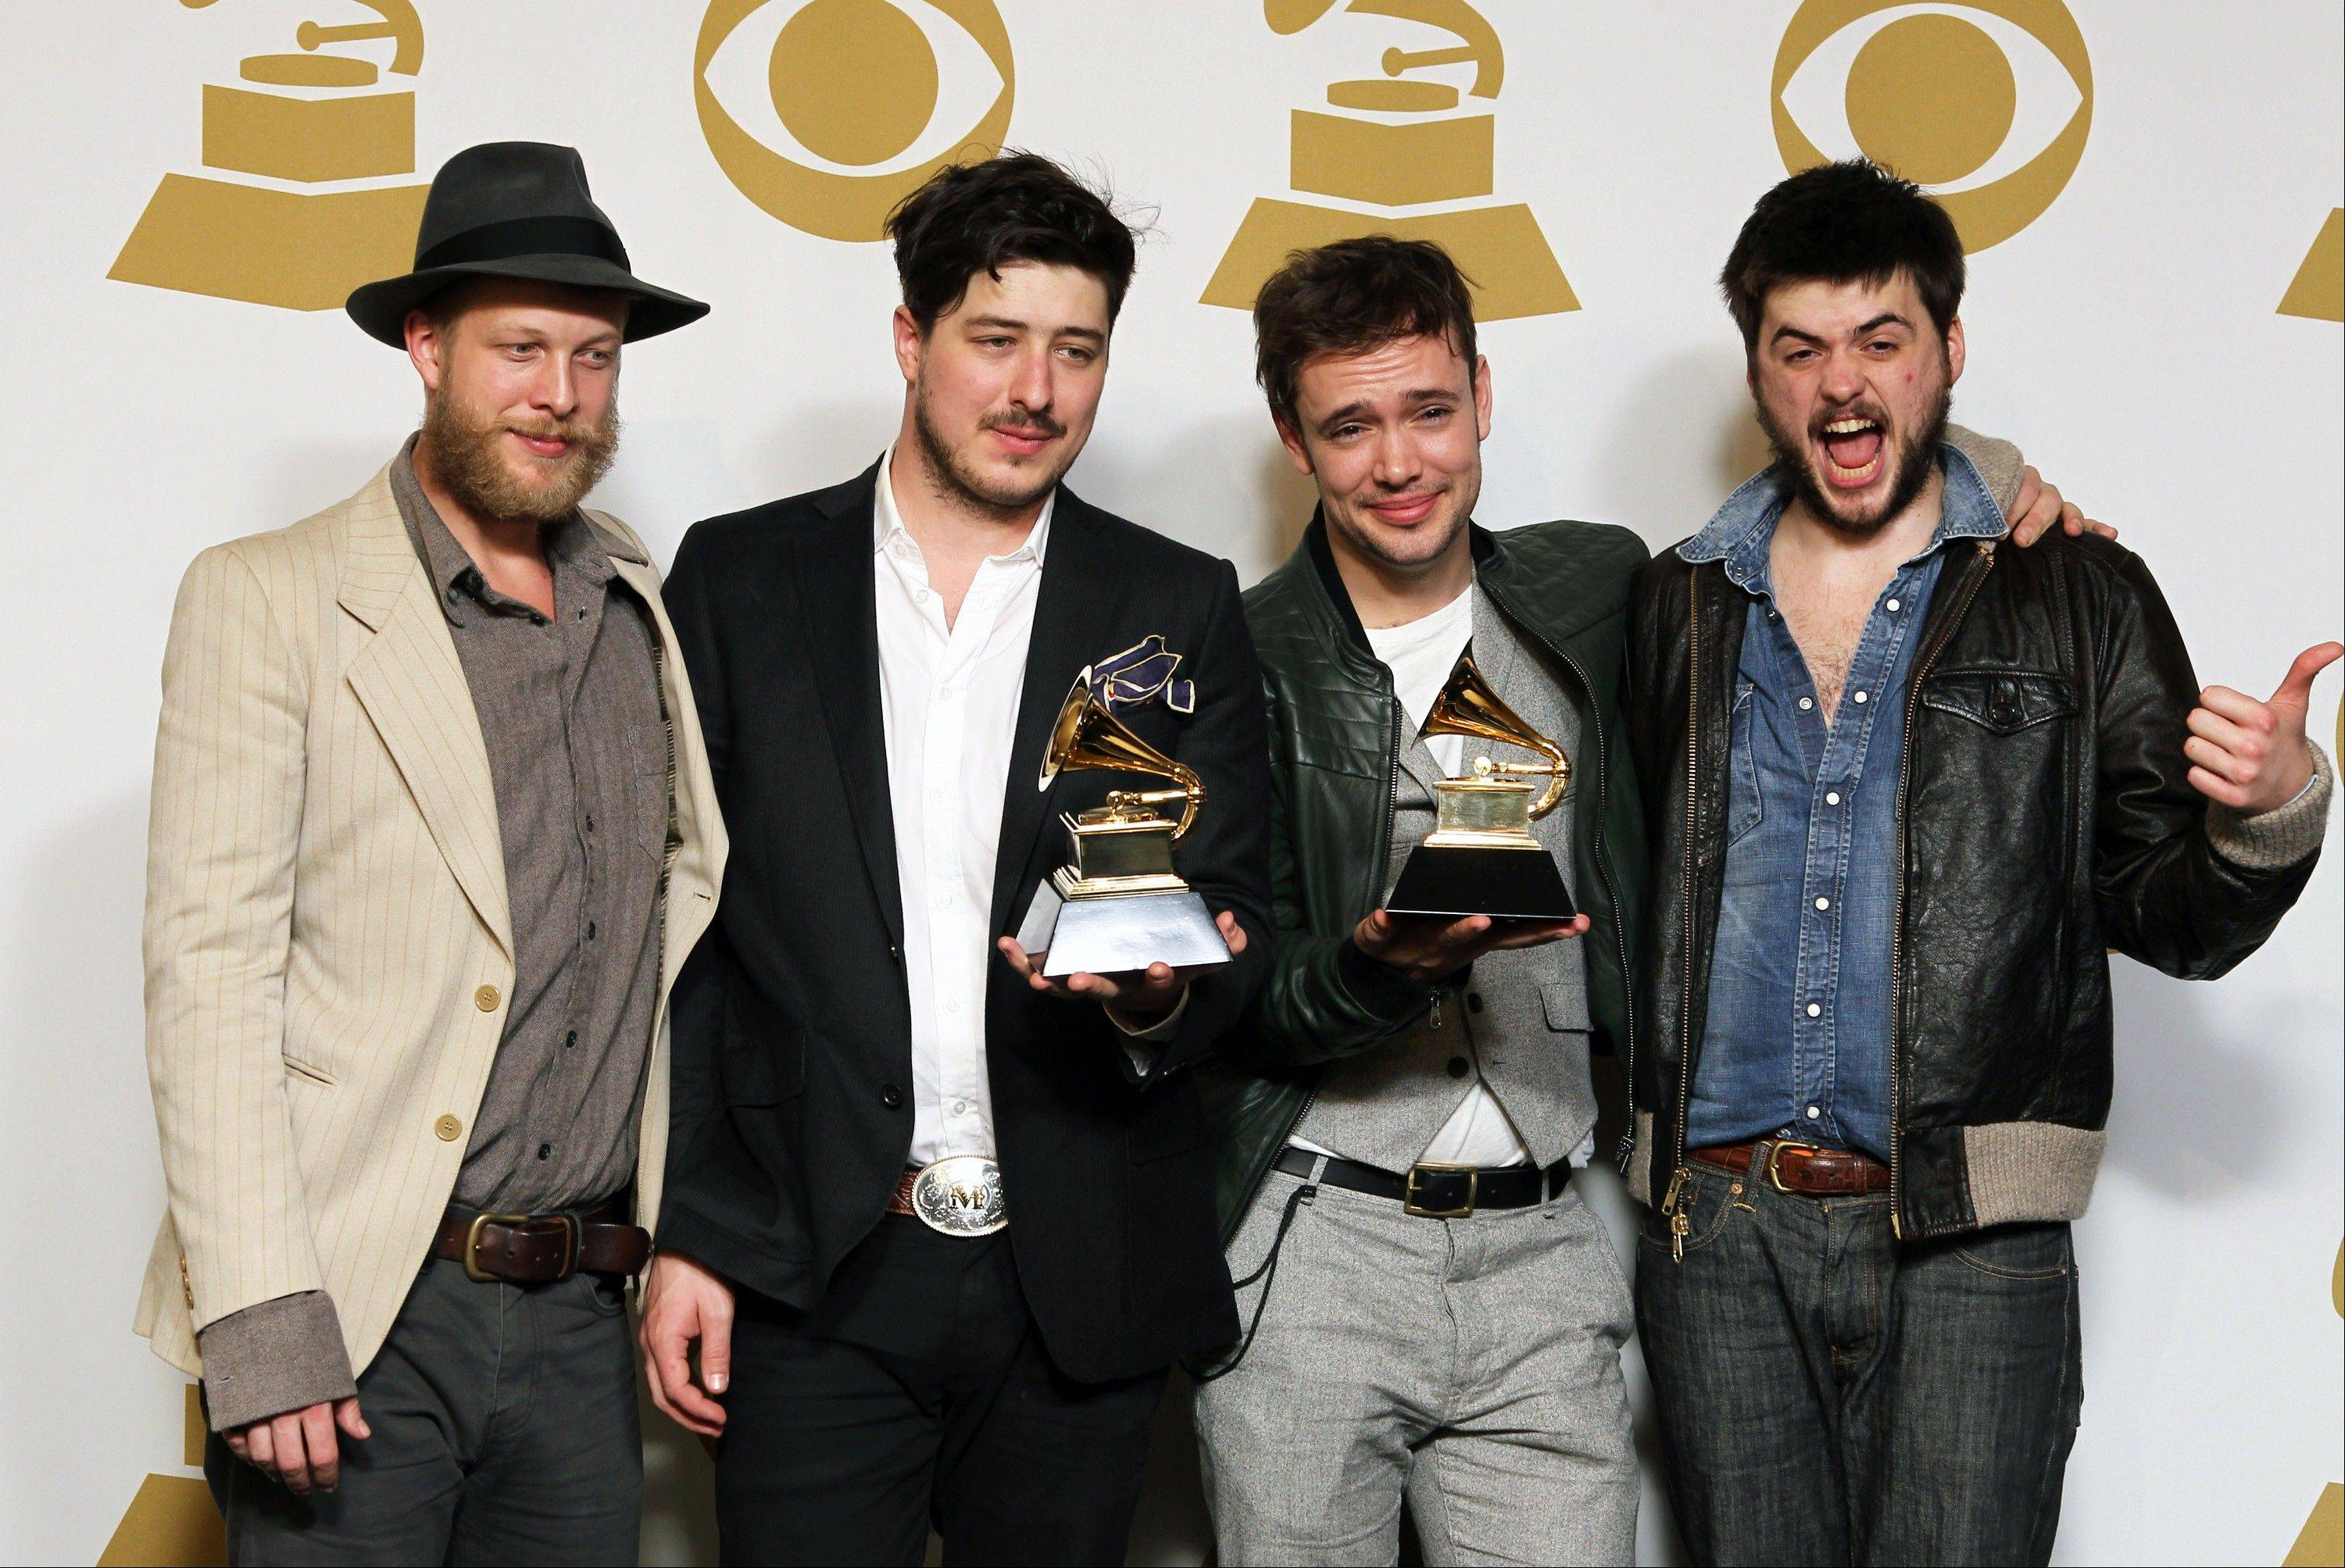 The musical group Mumford & Sons, from left, Ted Dwane, Marcus Mumford, Ben Lovett and Winston Marshall, at the 55th annual Grammy Awards in Los Angeles. The band on Thursday announced it has canceled its headlining performance at Bonnaroo Music & Arts Festival in Tennessee. The decision comes after Dwane received treatment this week for a blood clot on his brain.